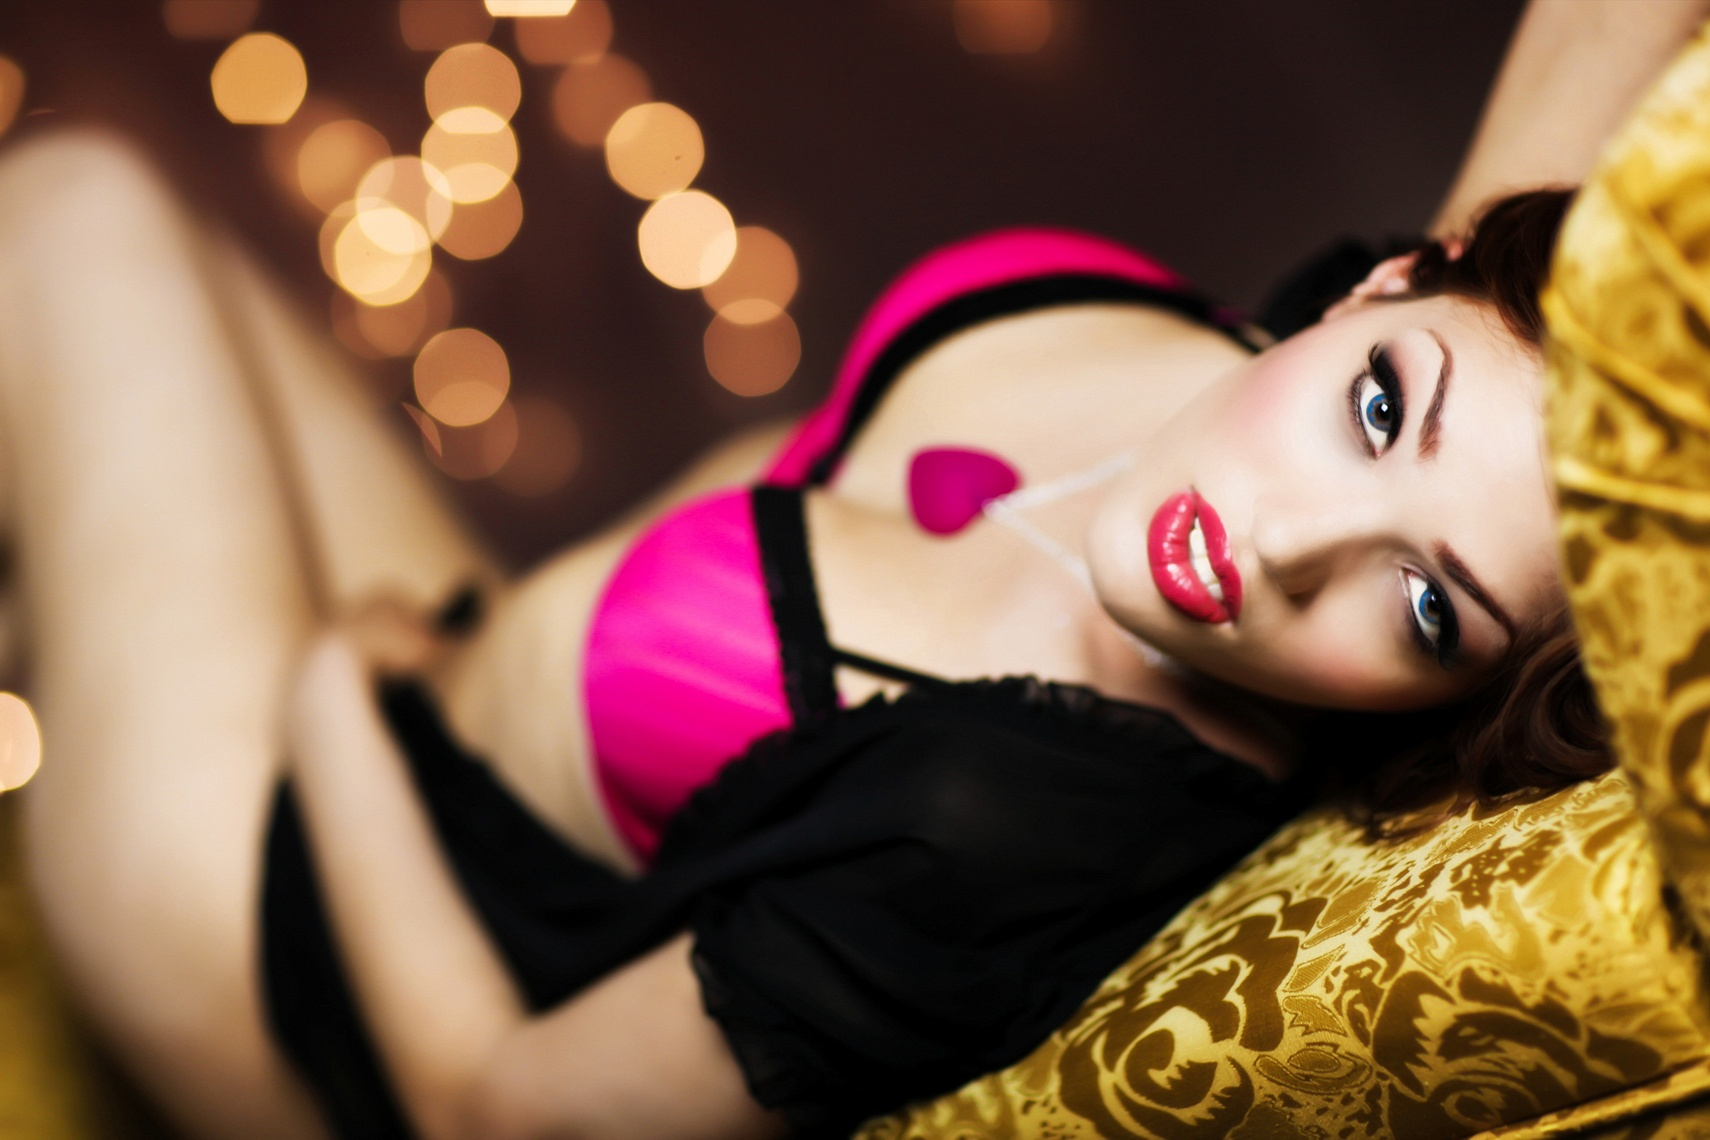 035Boudoirforwwebsite